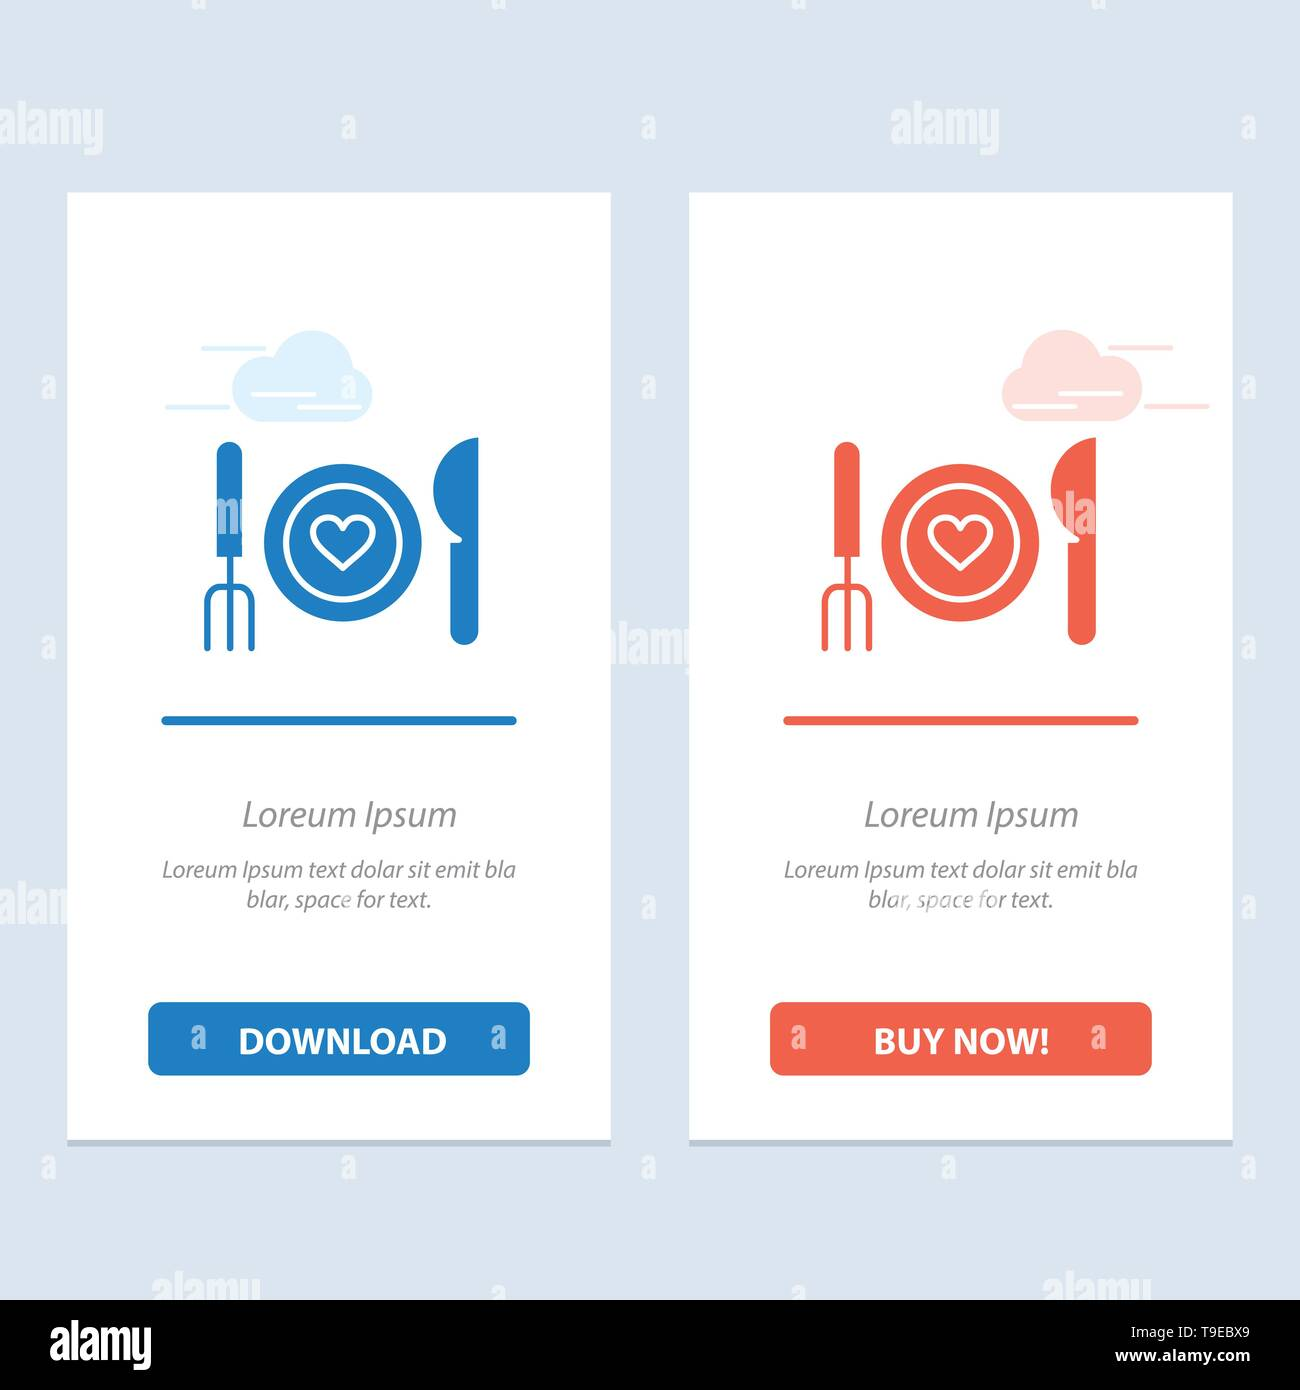 Dinner, Romantic, Food, Date, Couple  Blue and Red Download and Buy Now web Widget Card Template - Stock Image